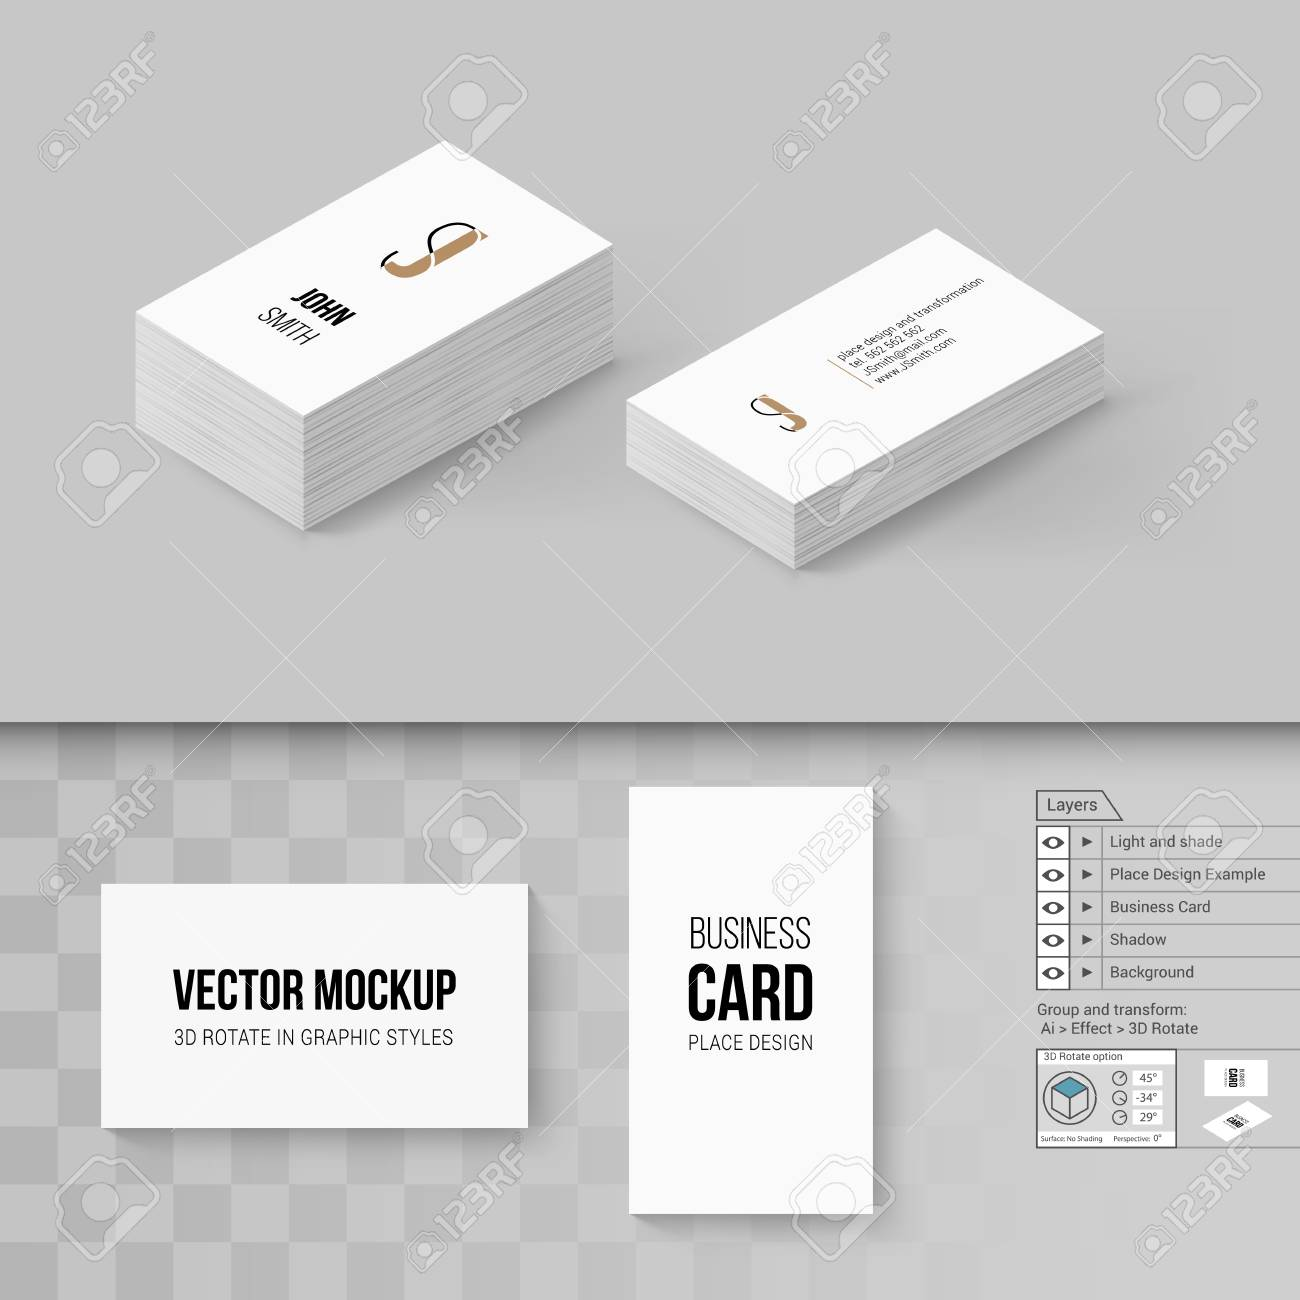 Wite business cards template branding mock up with 3d rotate vector wite business cards template branding mock up with 3d rotate options flashek Gallery